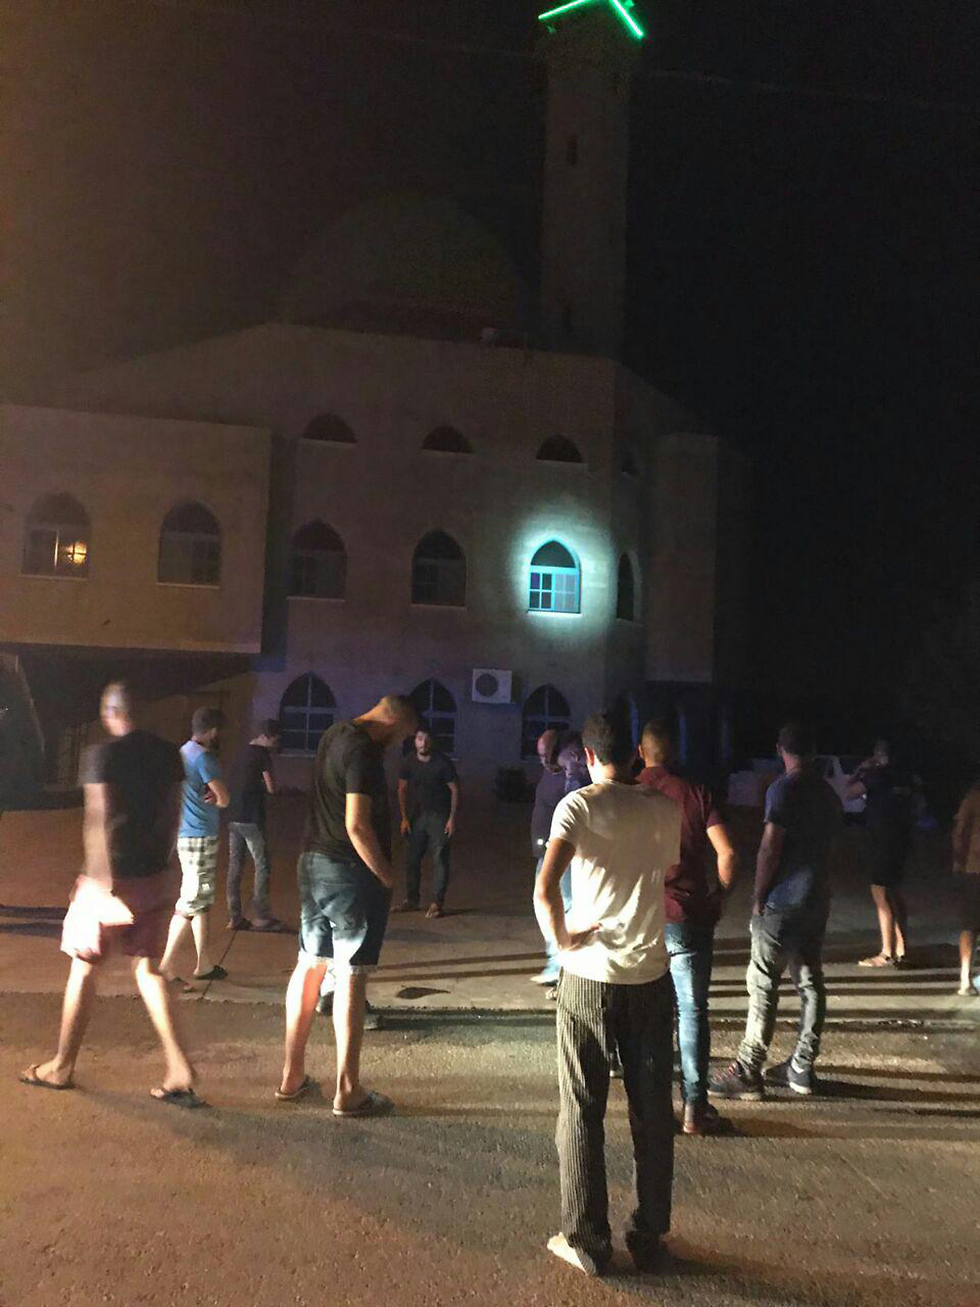 One of the mosques in Maghar hit by a grenade following the Temple Mt. attack